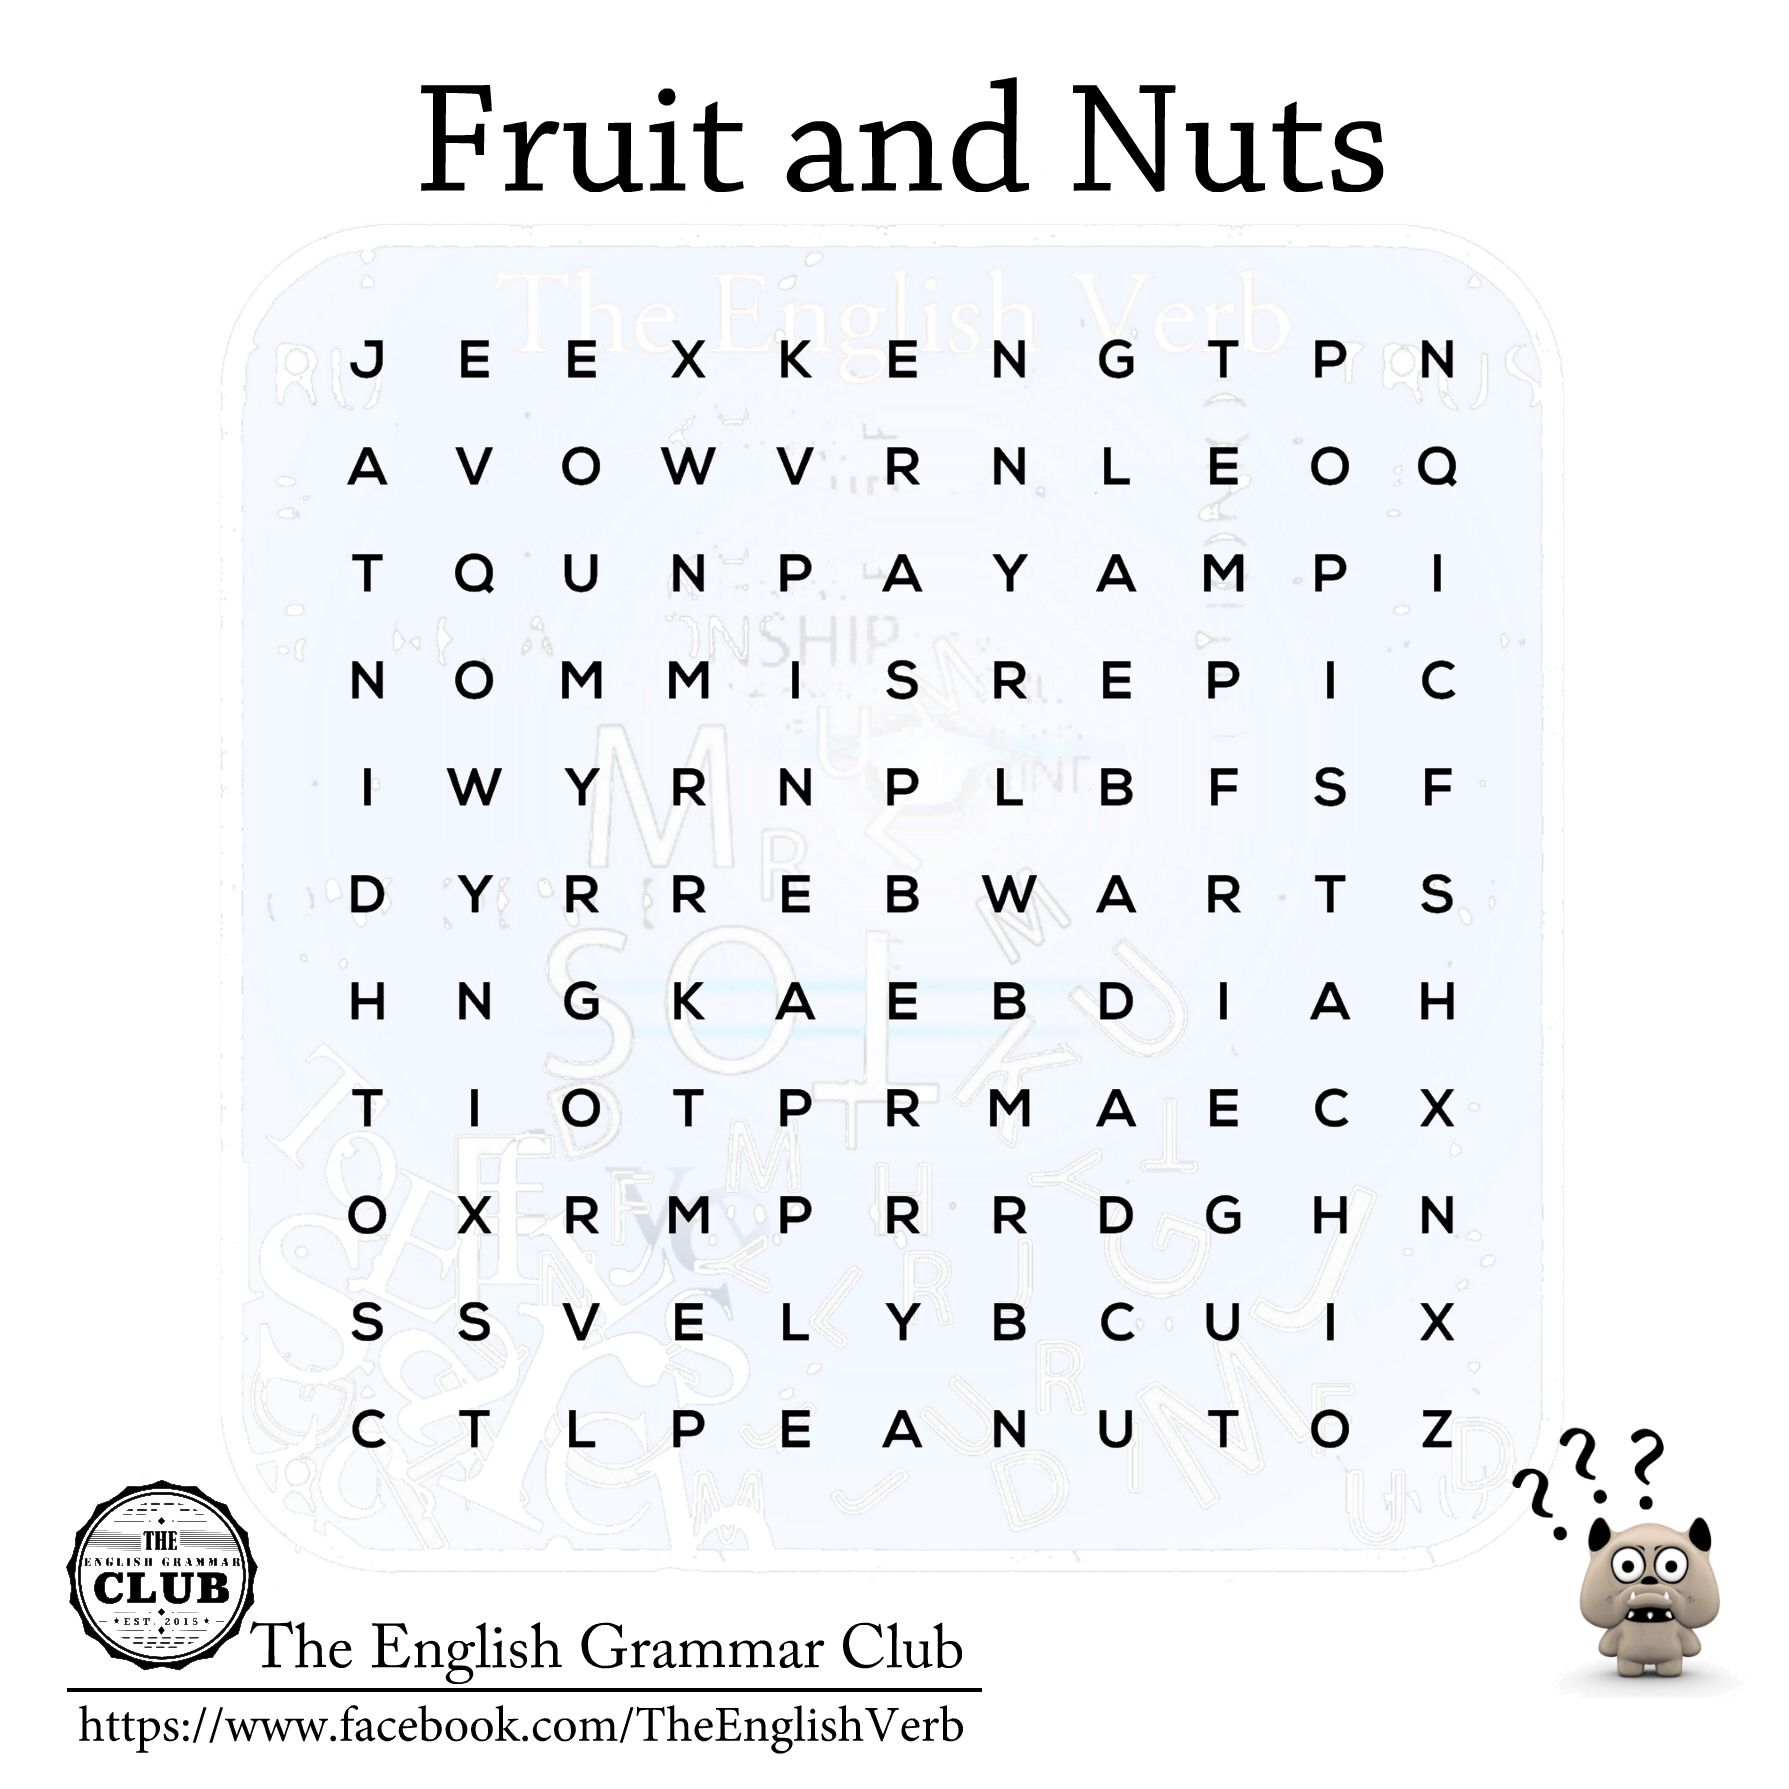 can you the jobs esl word search the objective of this fruit and nuts word search